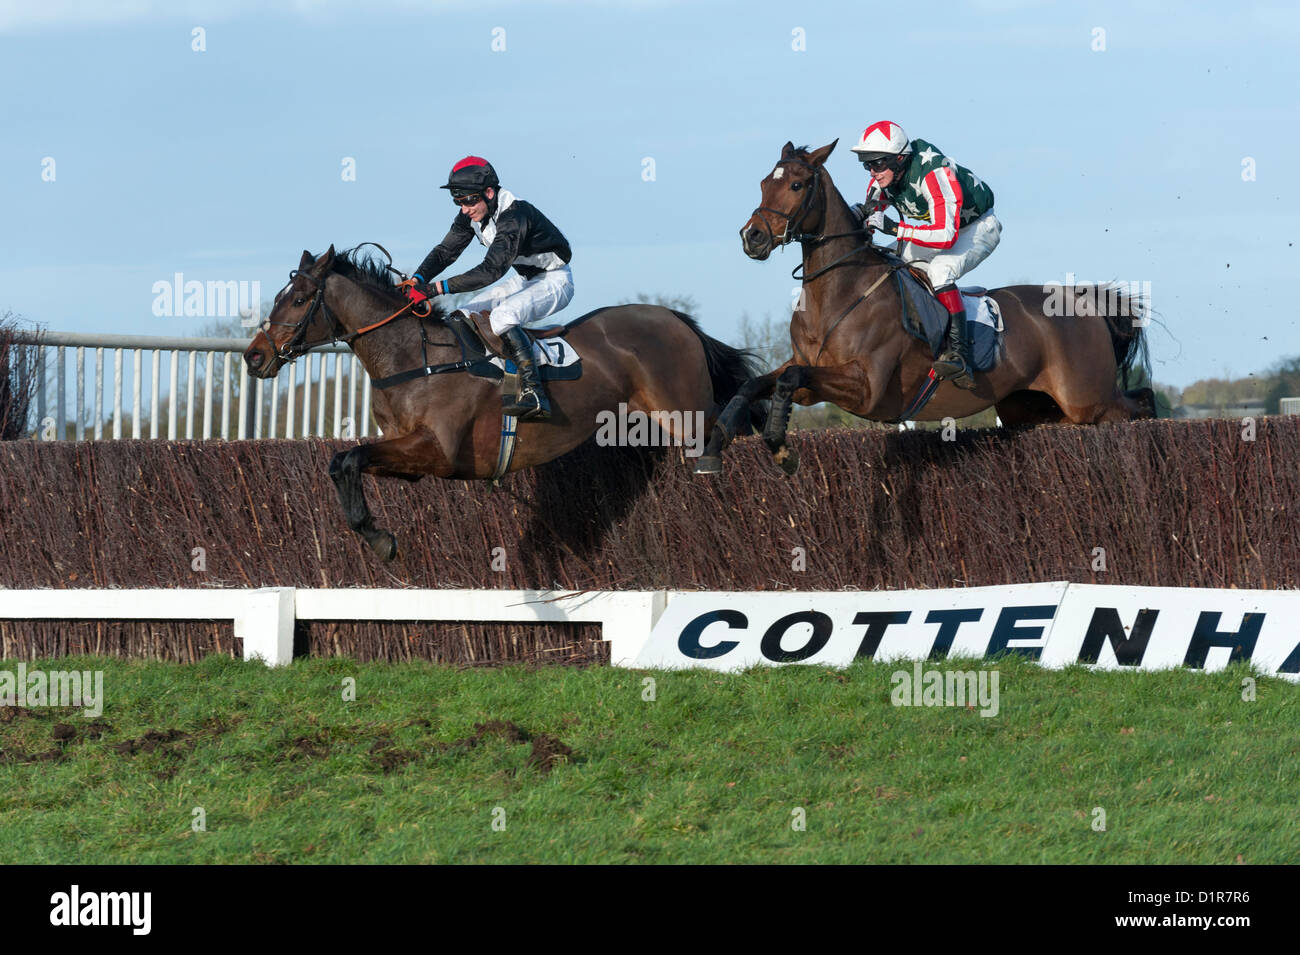 Horses and riders jump a fence at Cottenham Point-to-Point races Cambridgeshire UK - Stock Image